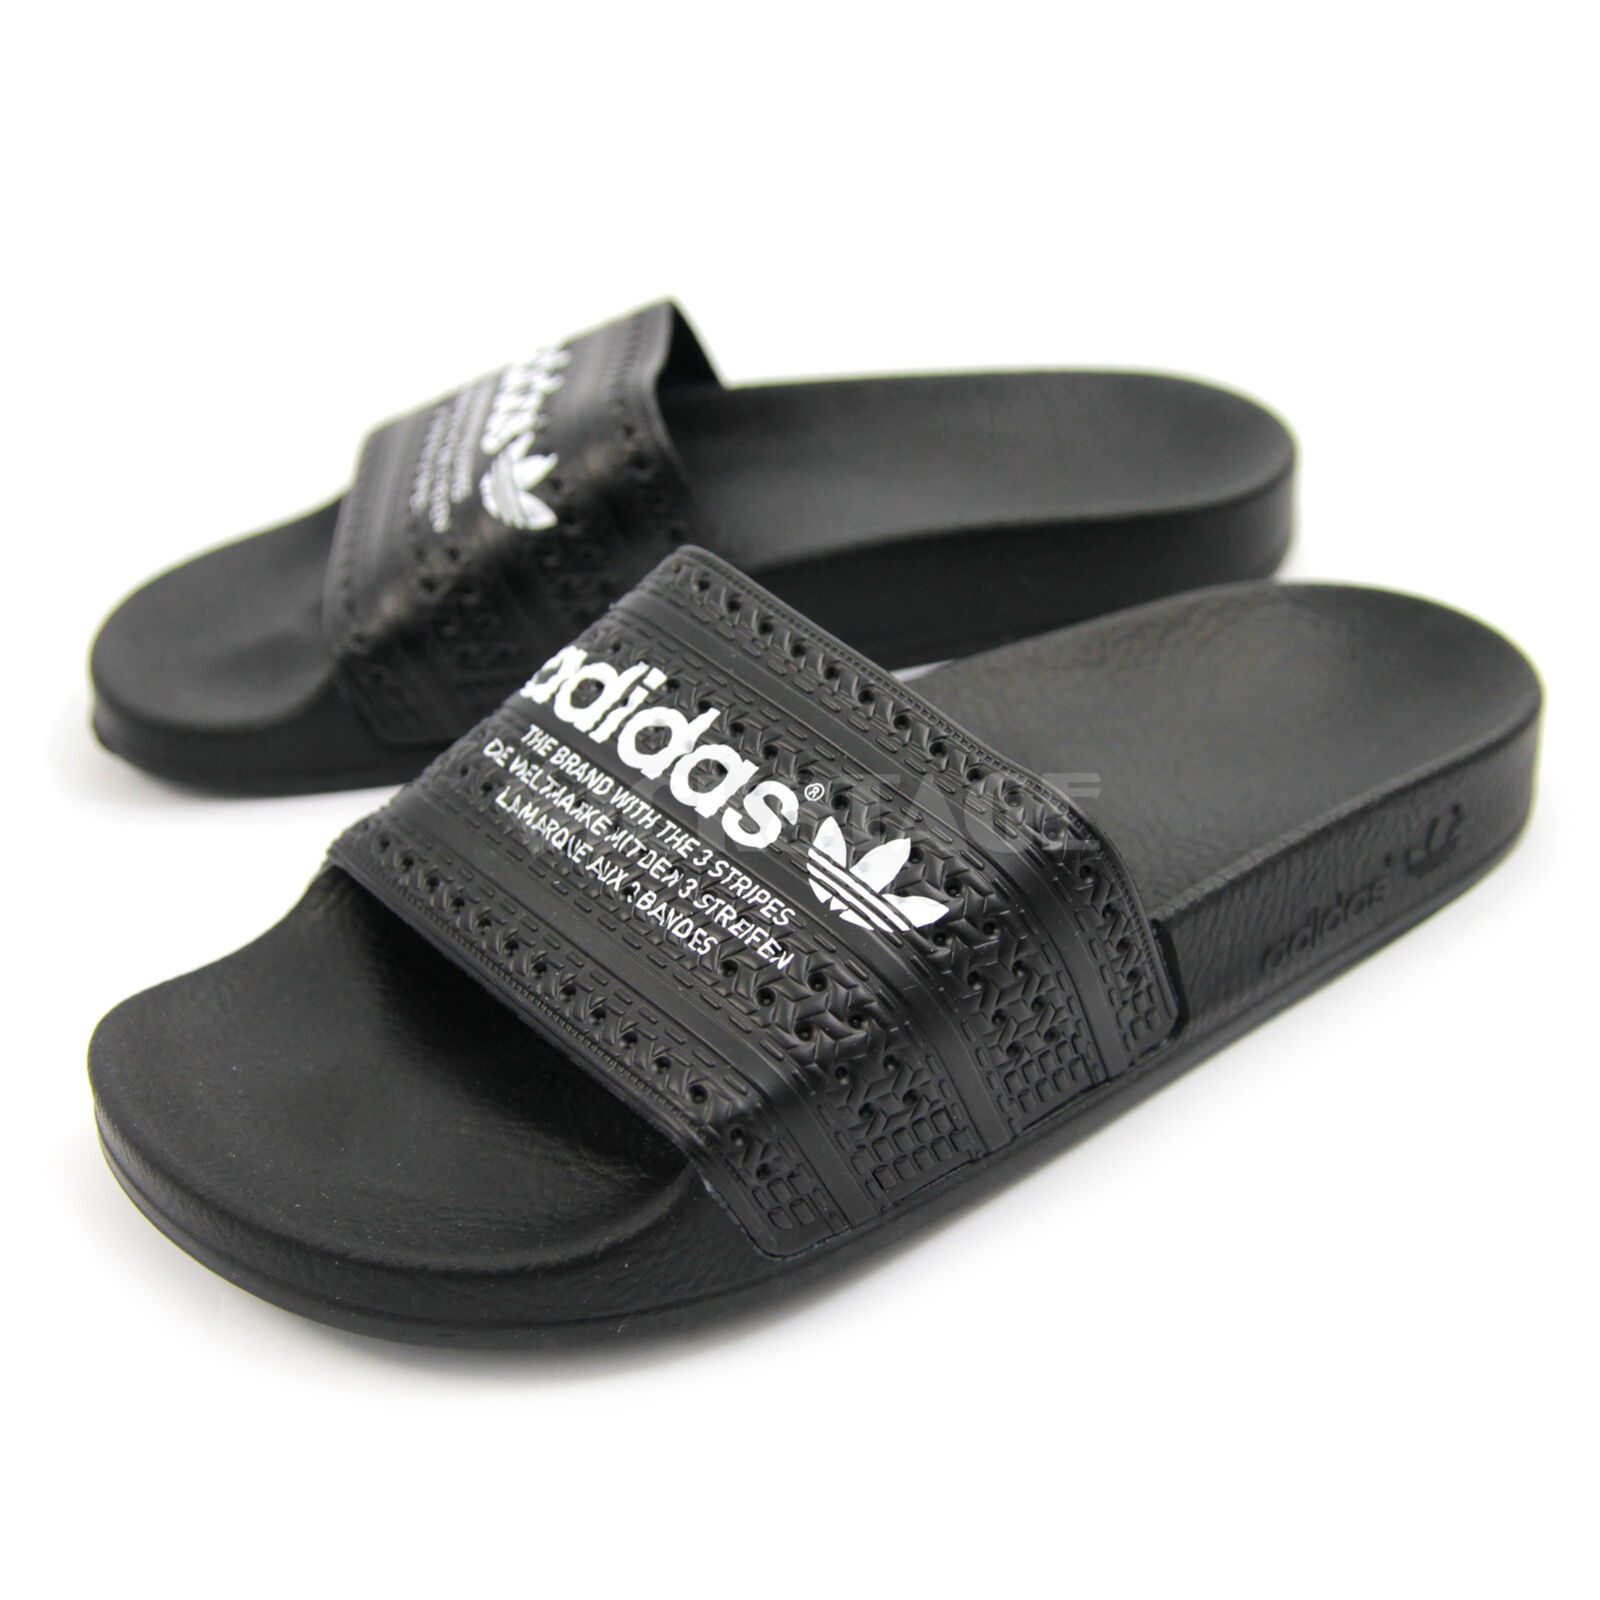 e92feb9c04f7 Adidas Originals Mens Unisex Adilette Black White Trefoil Sandal Slides  S78689